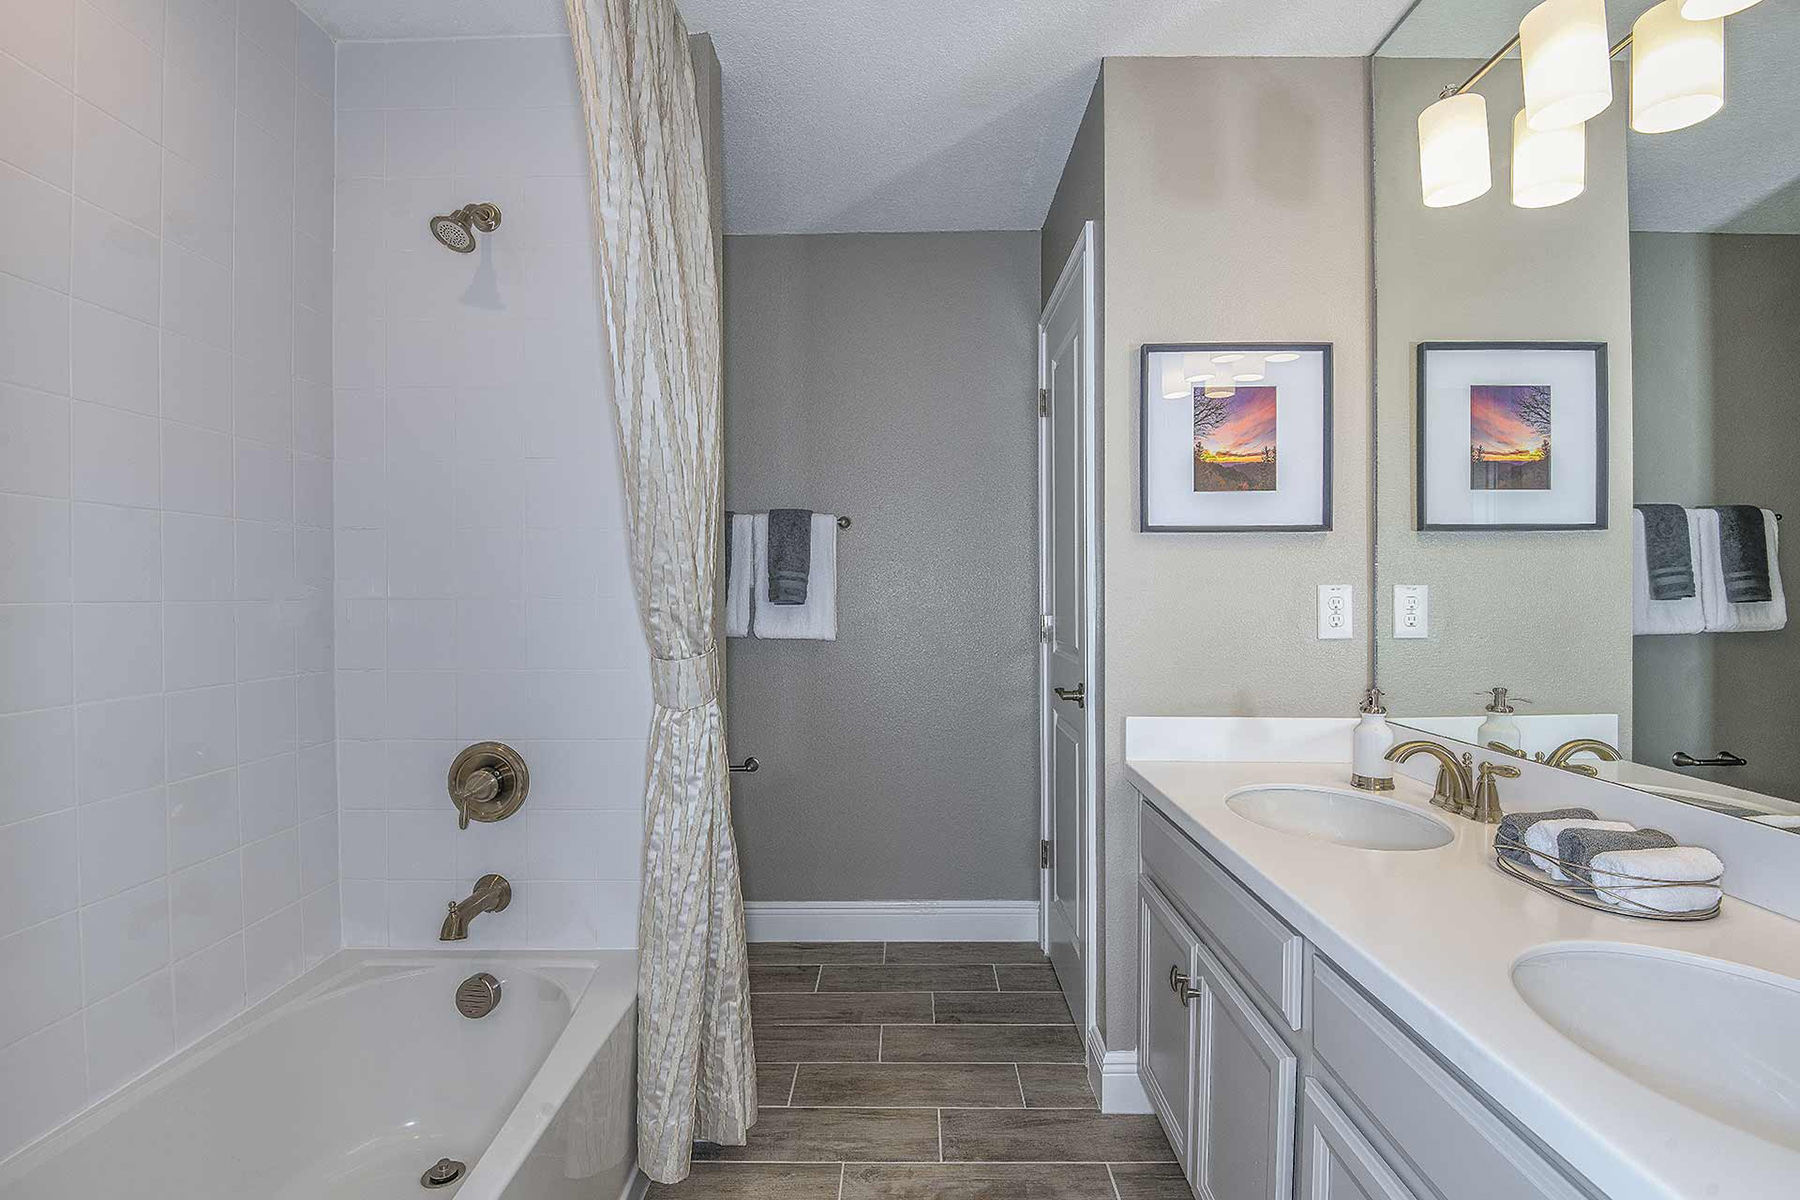 Sebring Plan Bath at Avea Pointe in Lutz Florida by Mattamy Homes